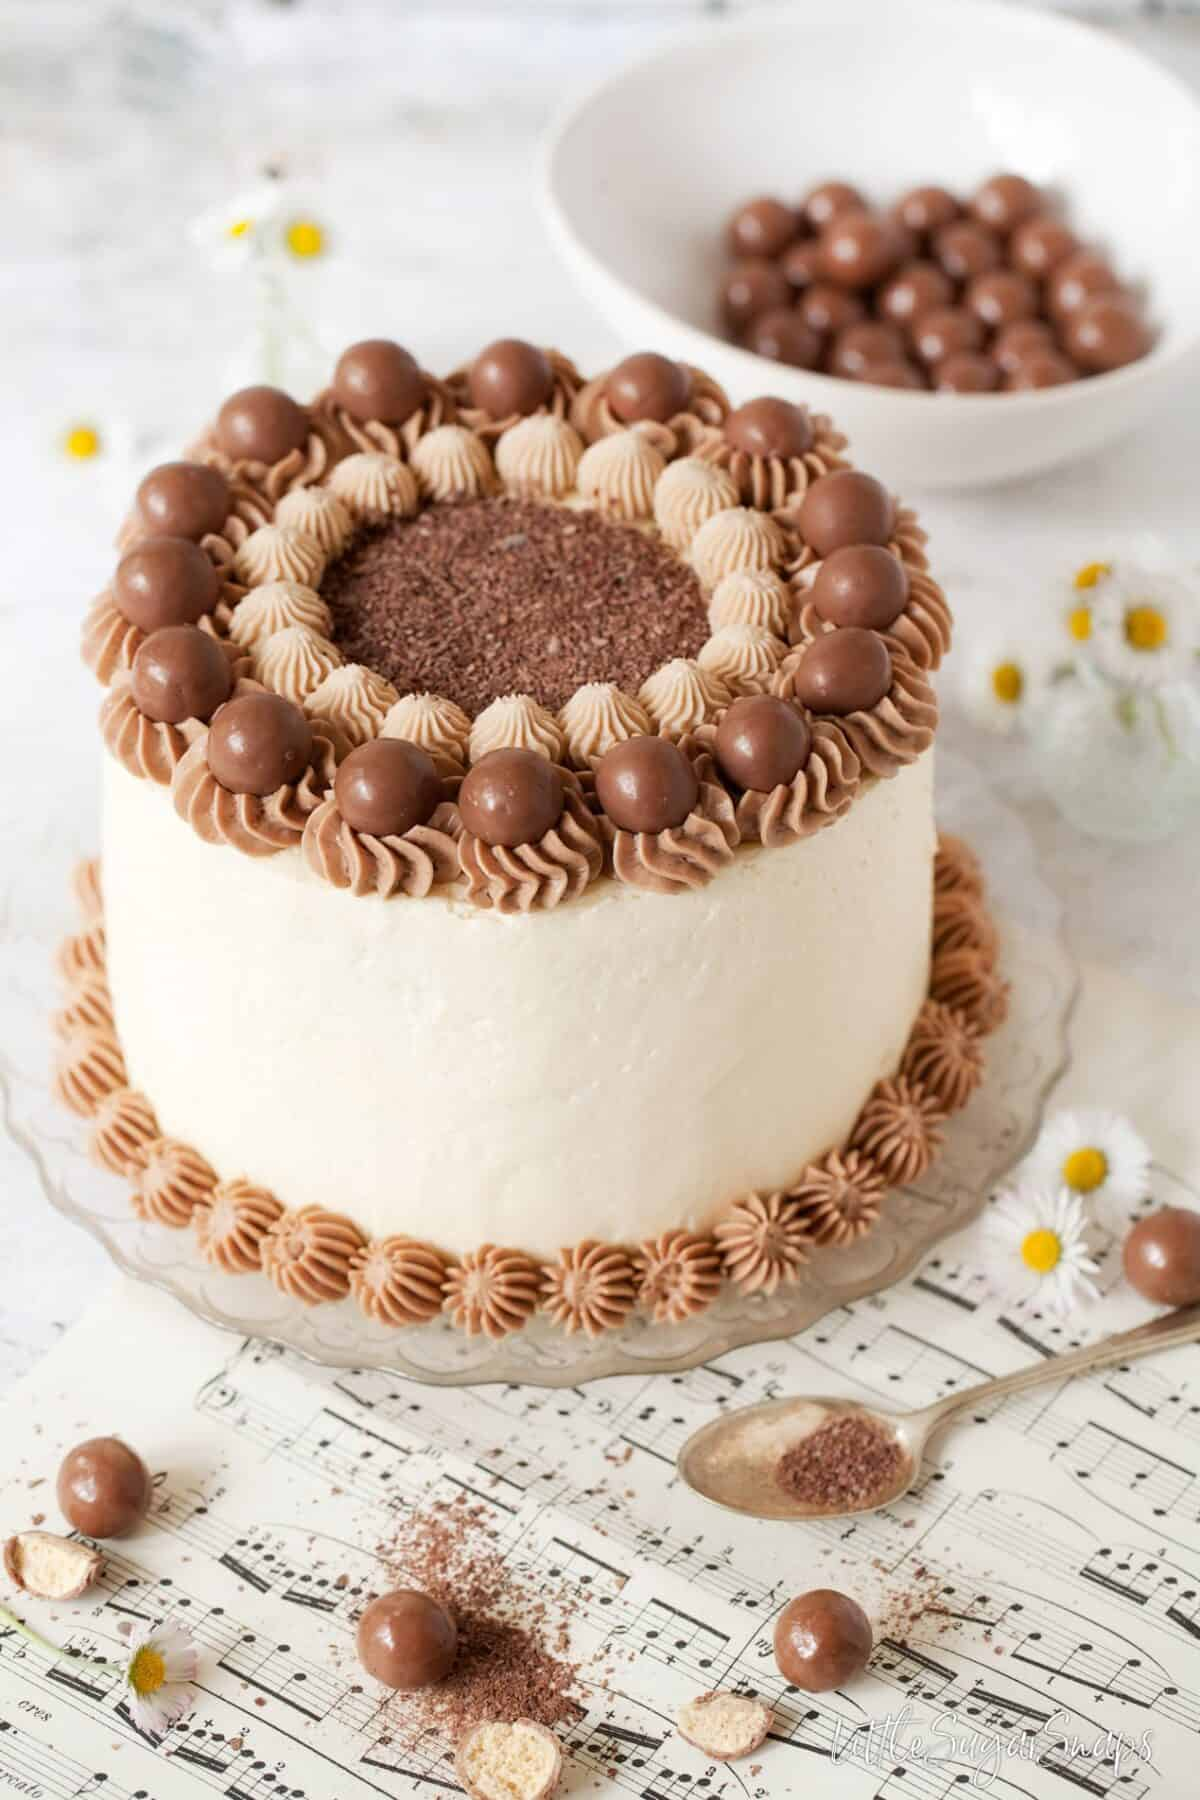 chocolate cake decorated with italian meringue buttercream and chocolate malt balls.